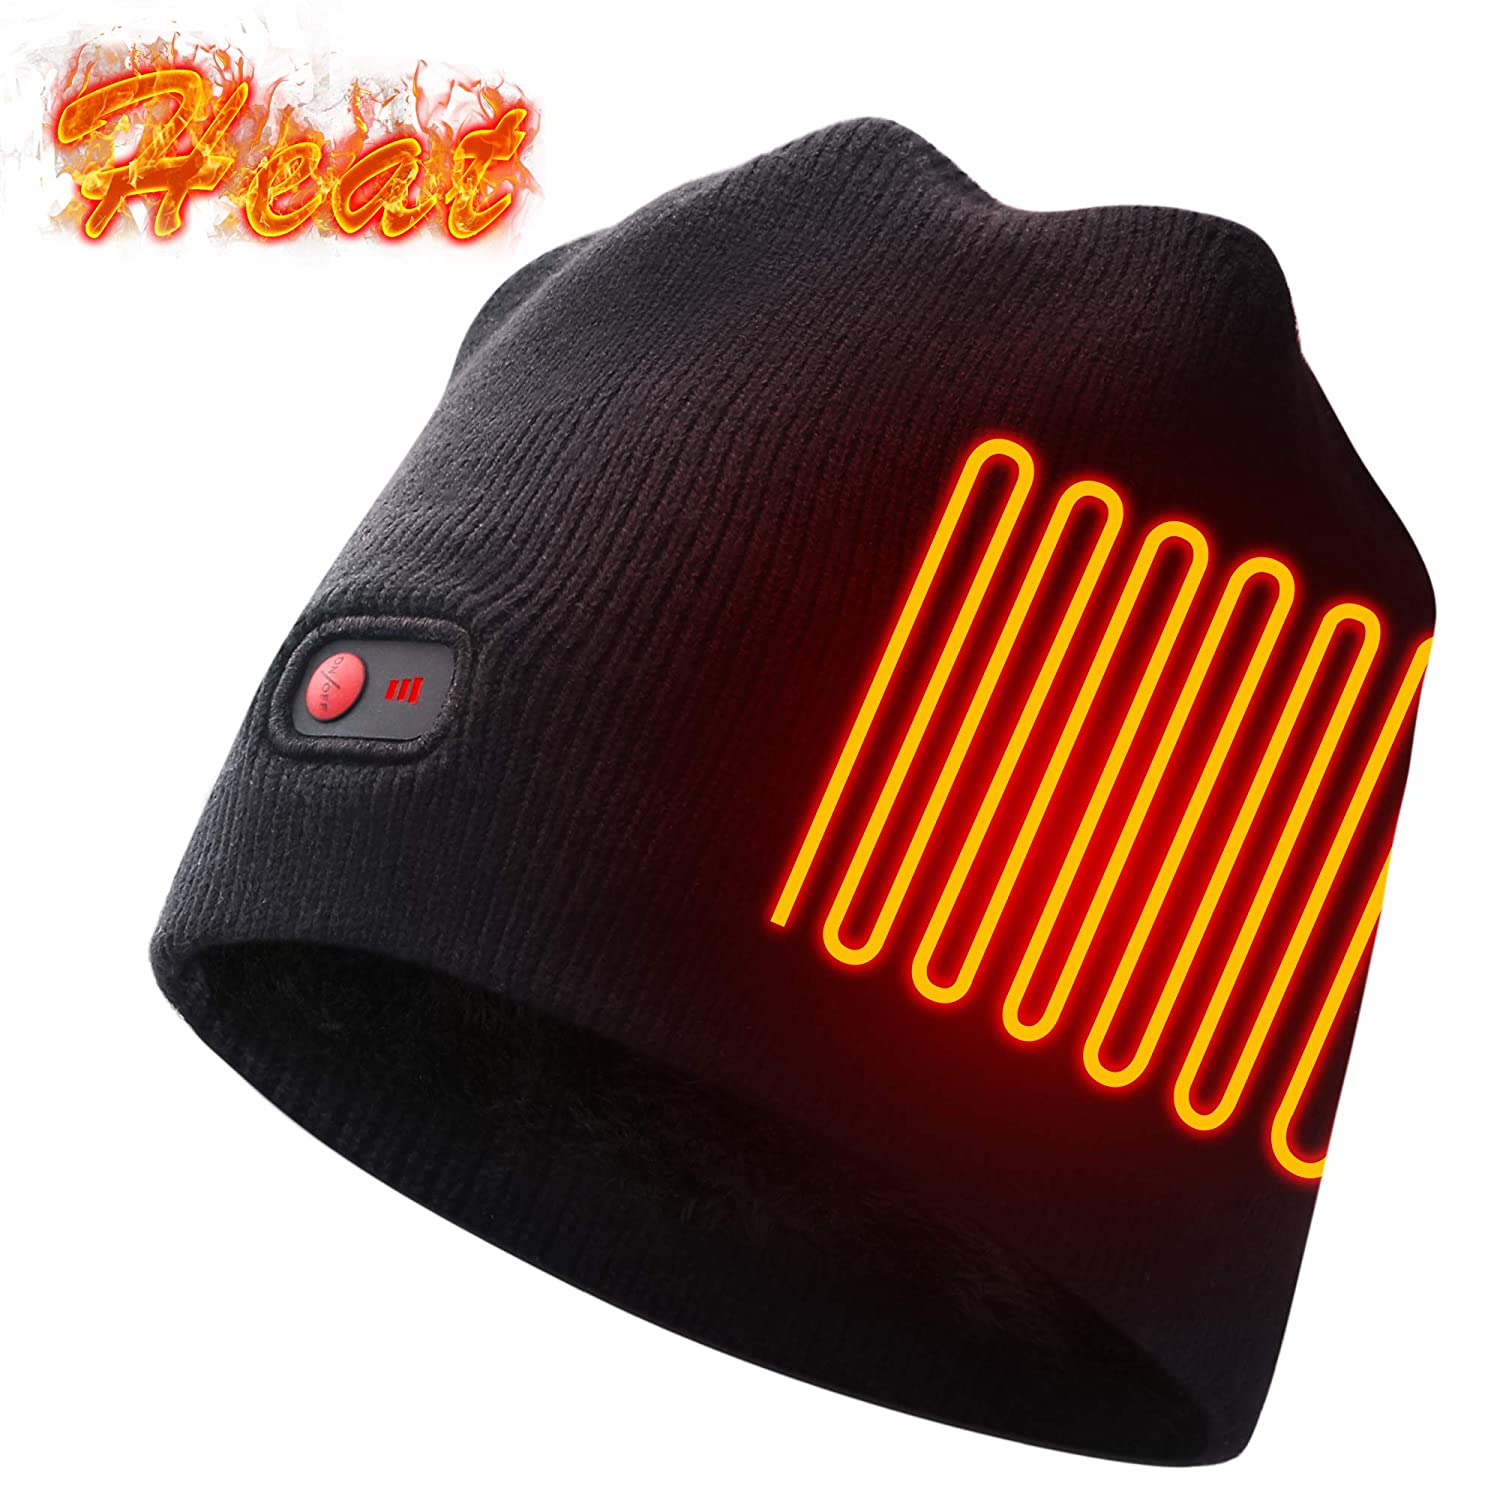 Autocastle Rechargeable Electric Warm Heated Hat Winter Battery Skull Beanie,Black,3 Heat HEAT WARMER HEATED HAT AT-7.4 Hat 05349